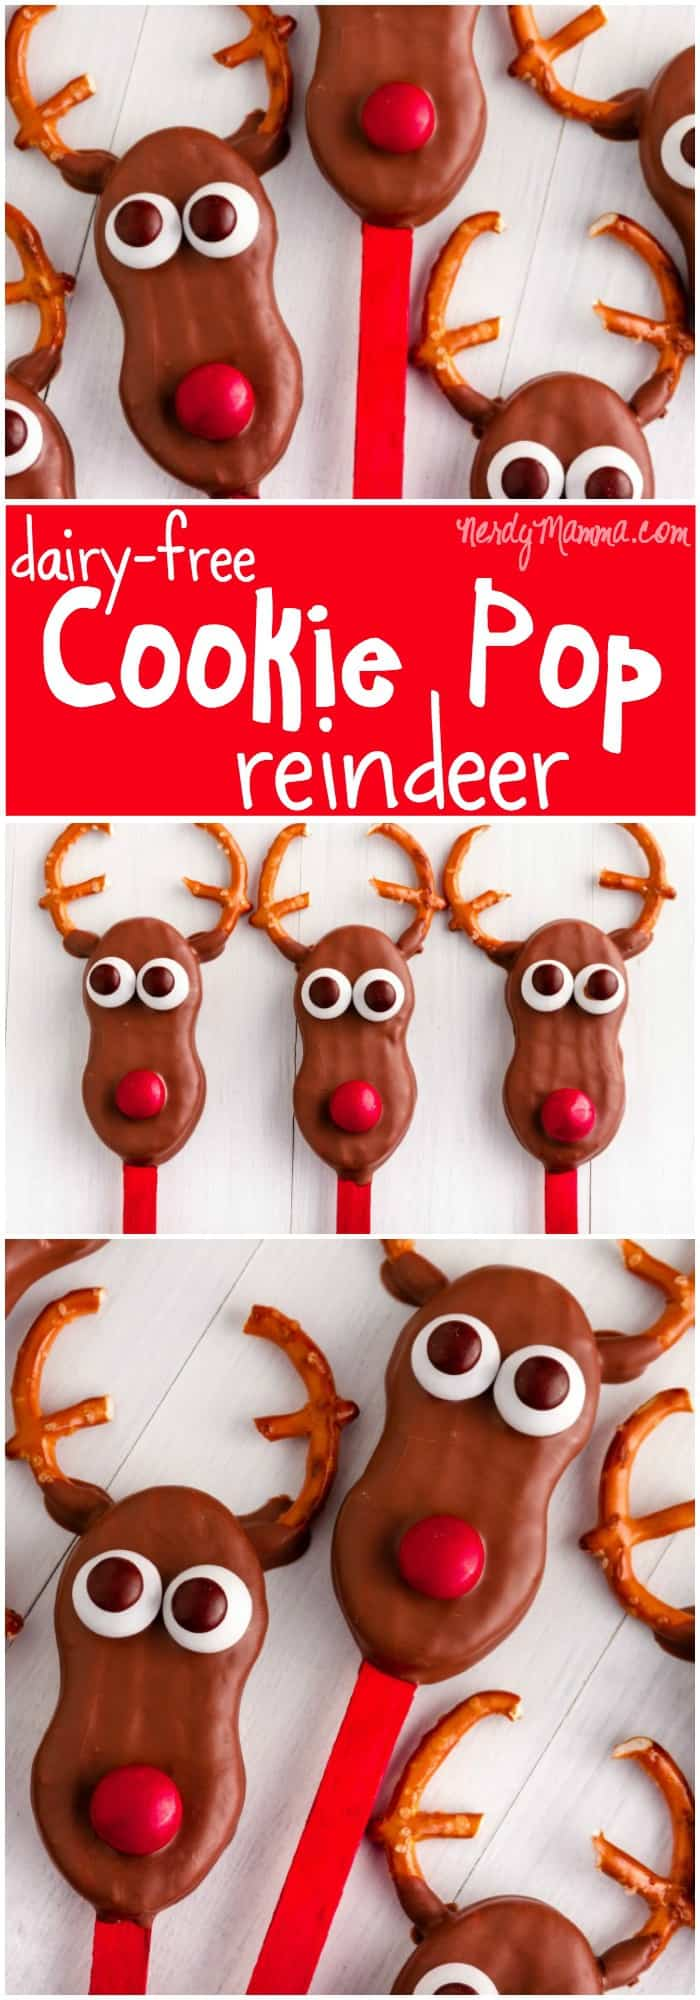 I love these dairy-free reindeer cookie pops...SO FREAKIN' YUMMY! Did you even know you could do this!